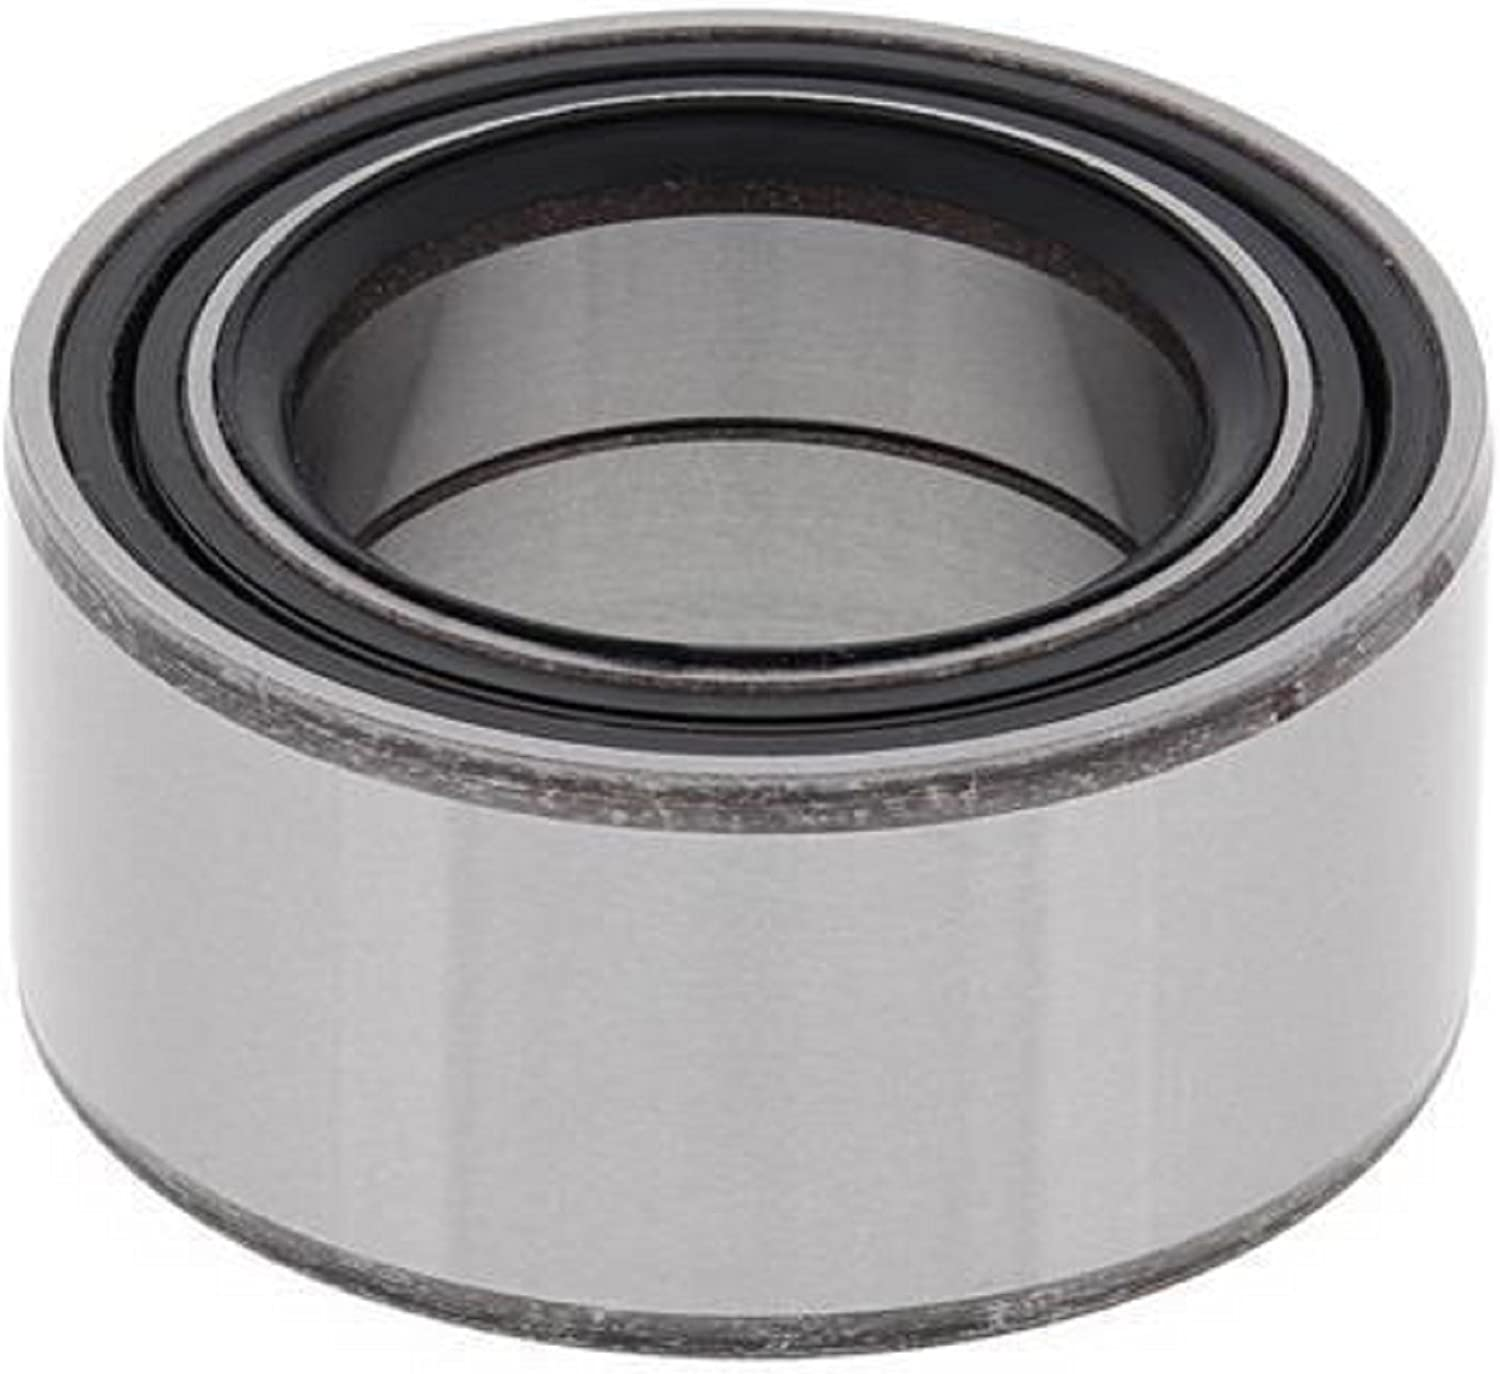 All Balls 25-1628 Front Wheel Bearing for Polaris RANGER XP 800 12